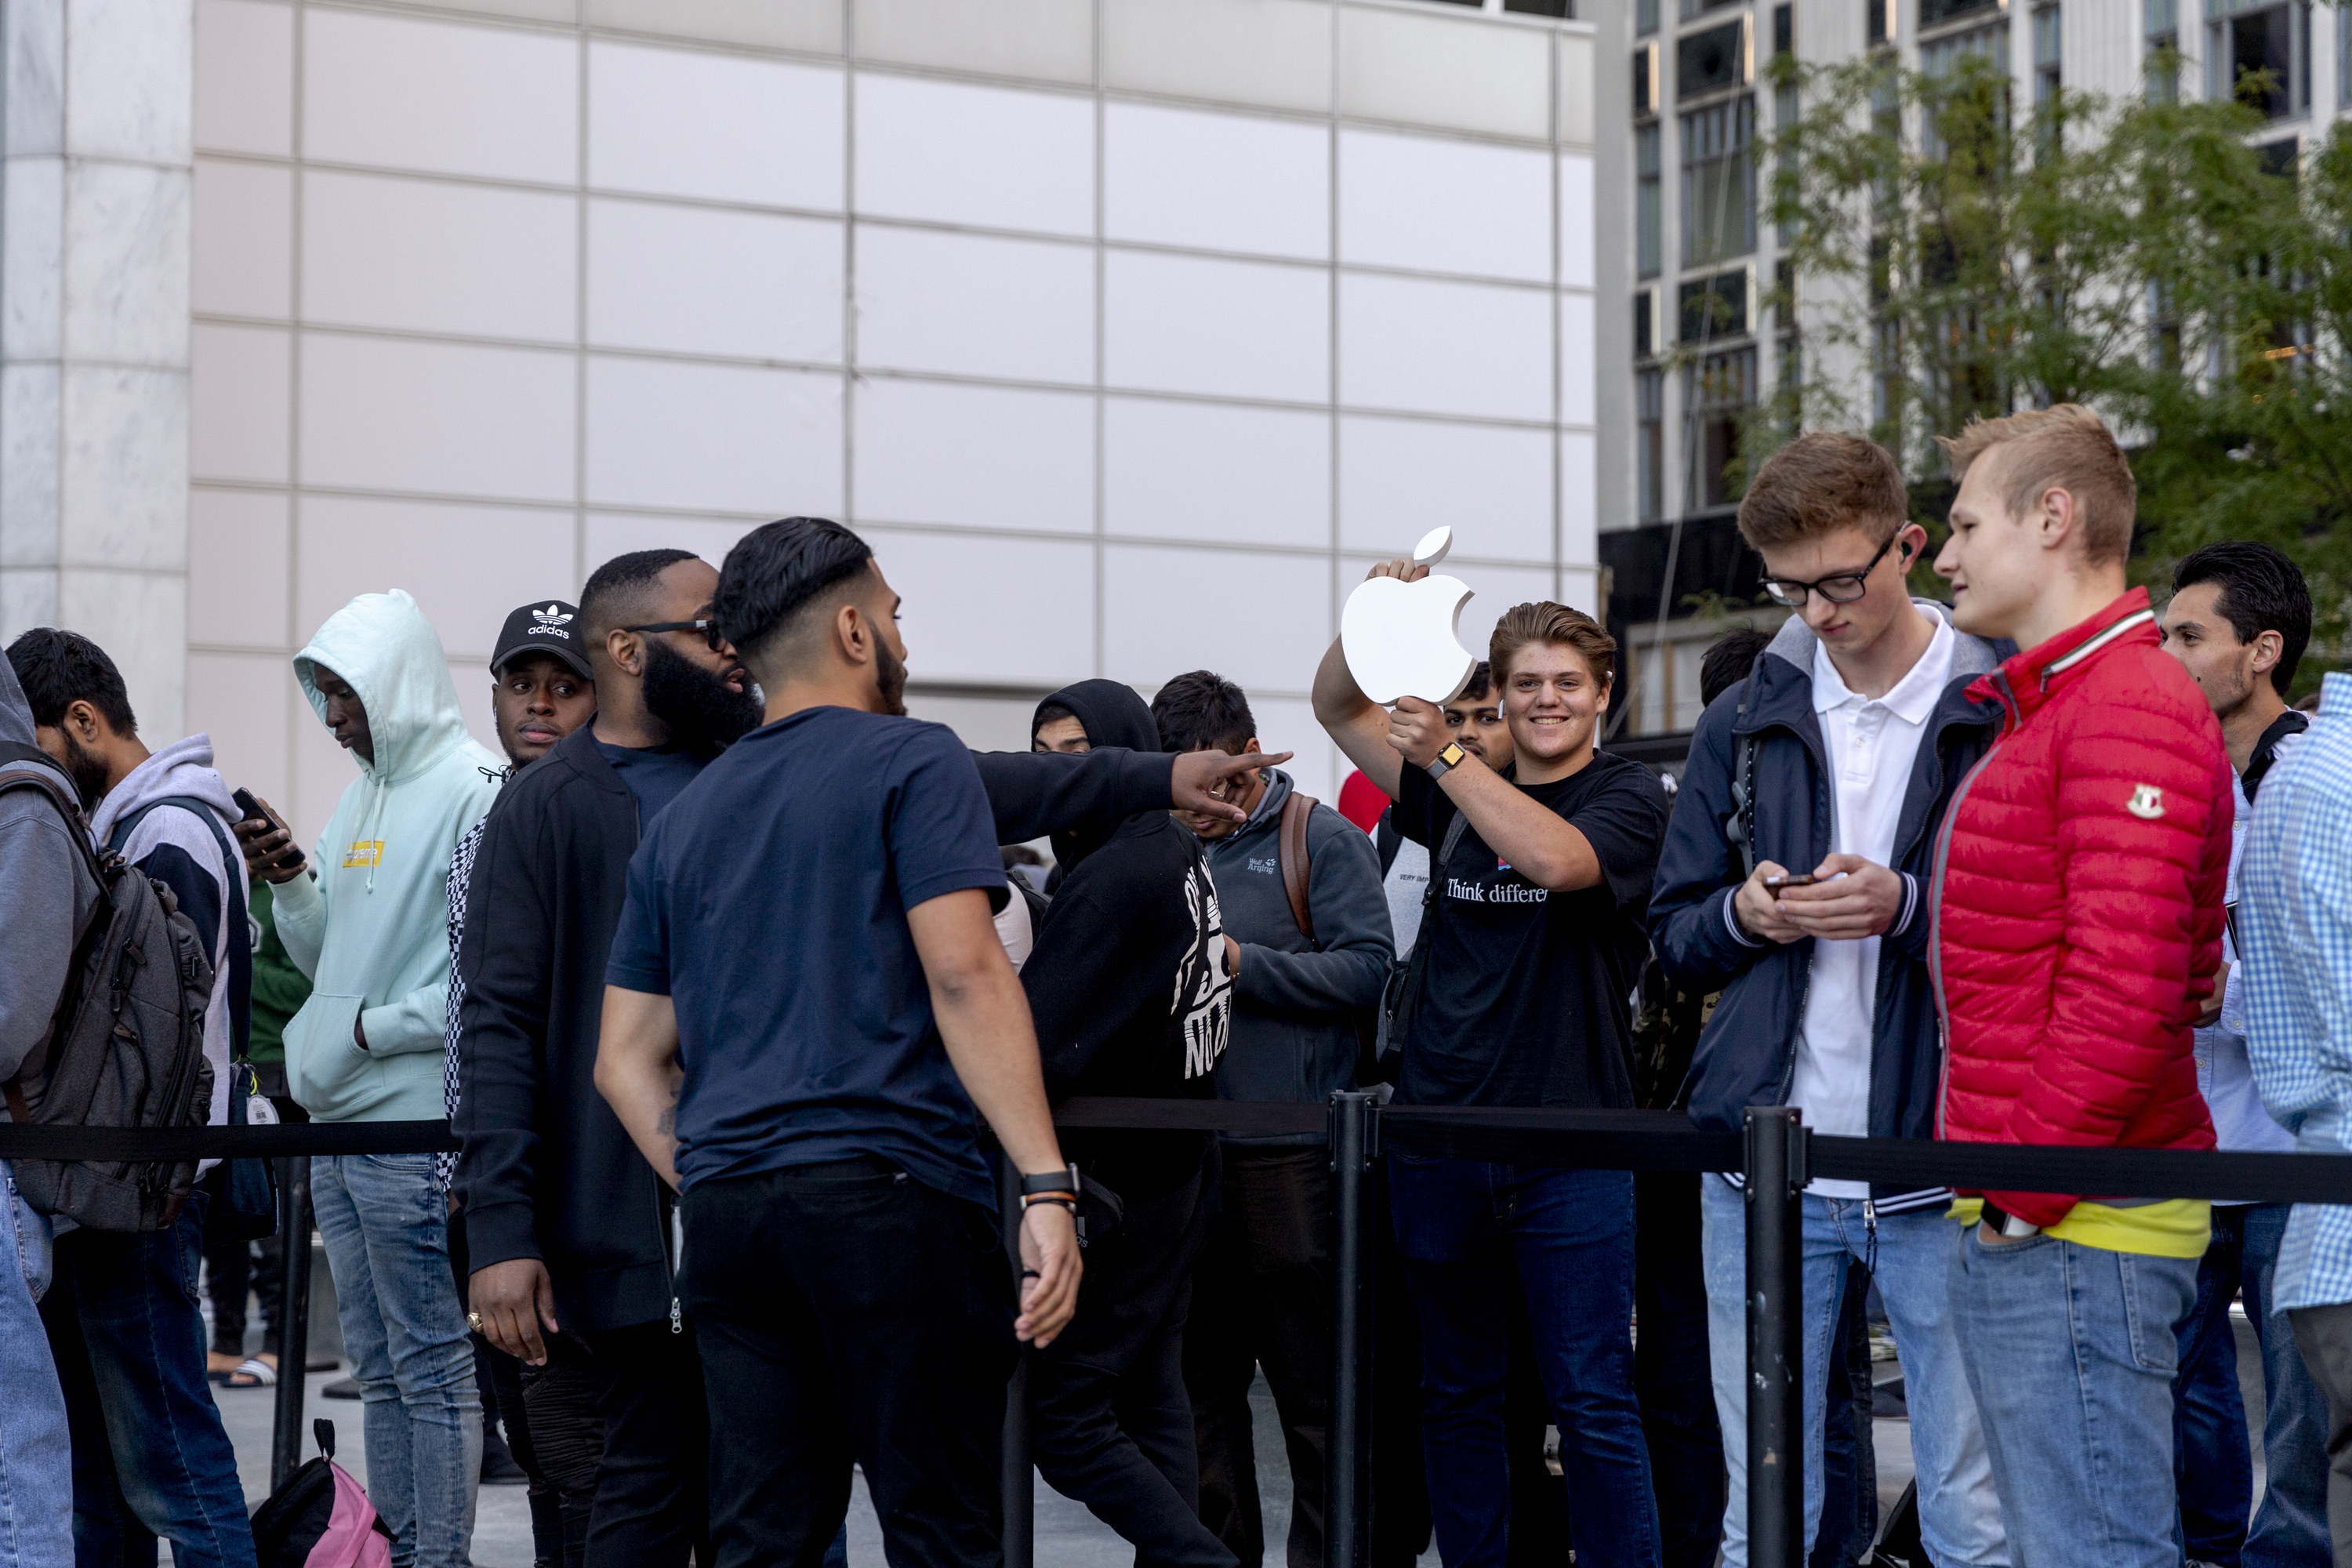 Apple's new iPhones show signs of healthy demand; remodeled NYC flagship draws crowds